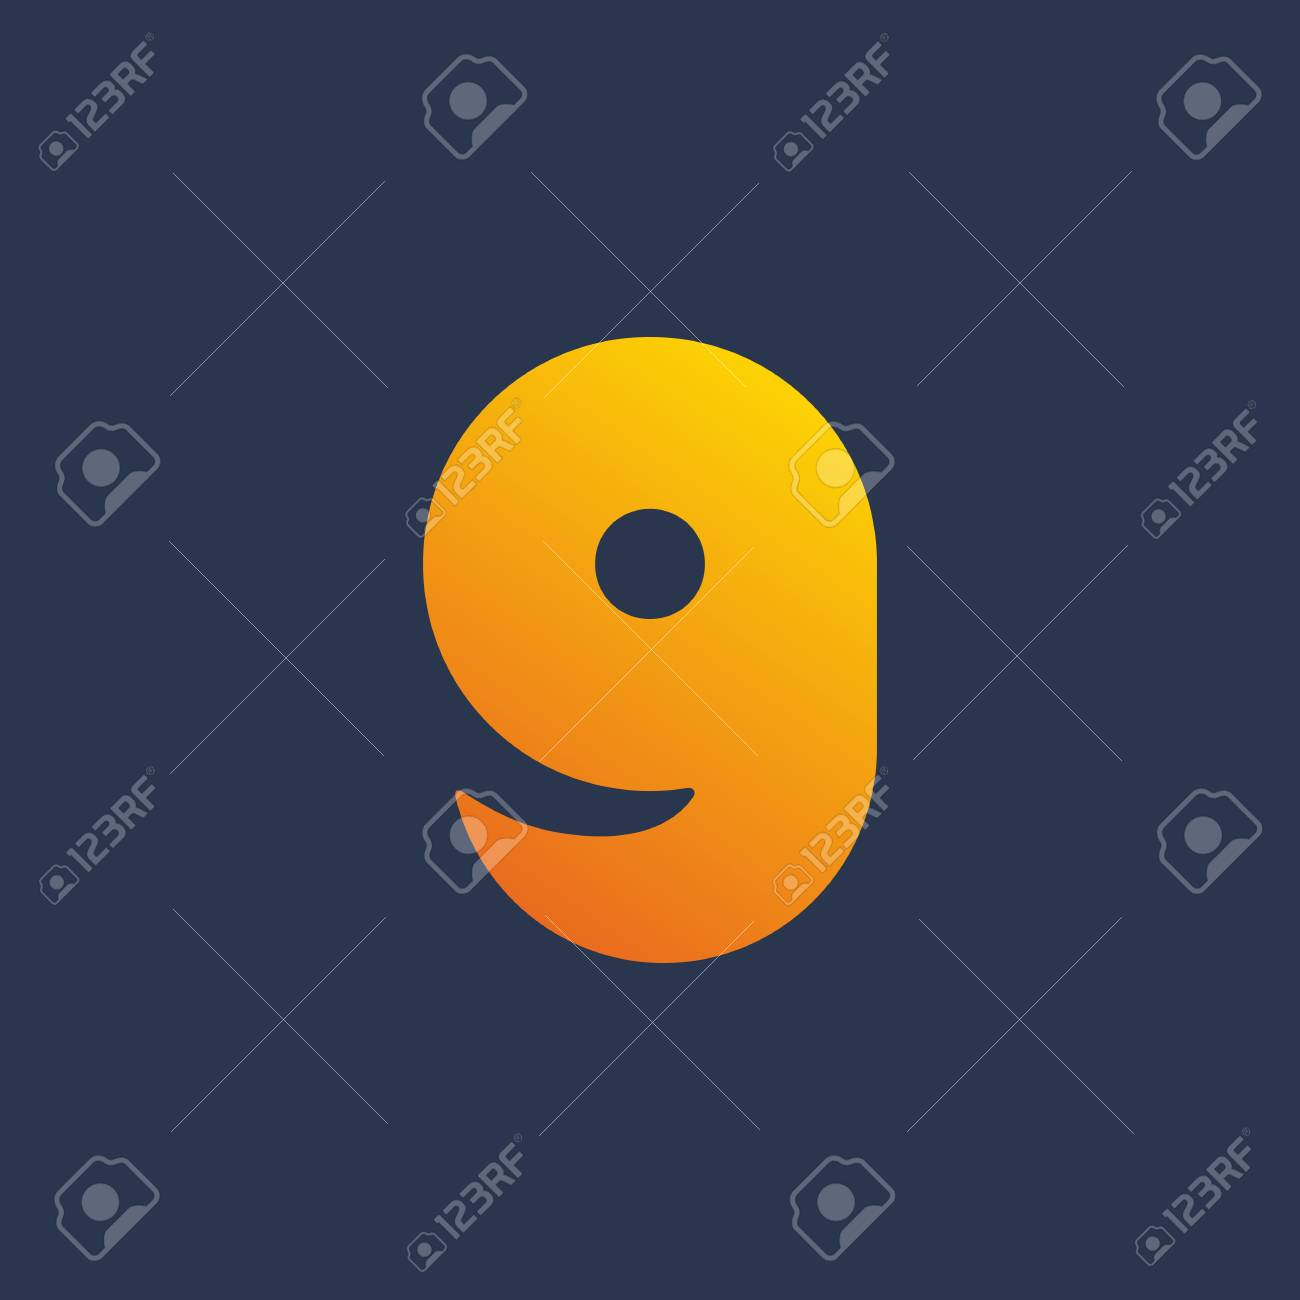 letter g number 9 smile logo icon design template elements stock vector 96747550